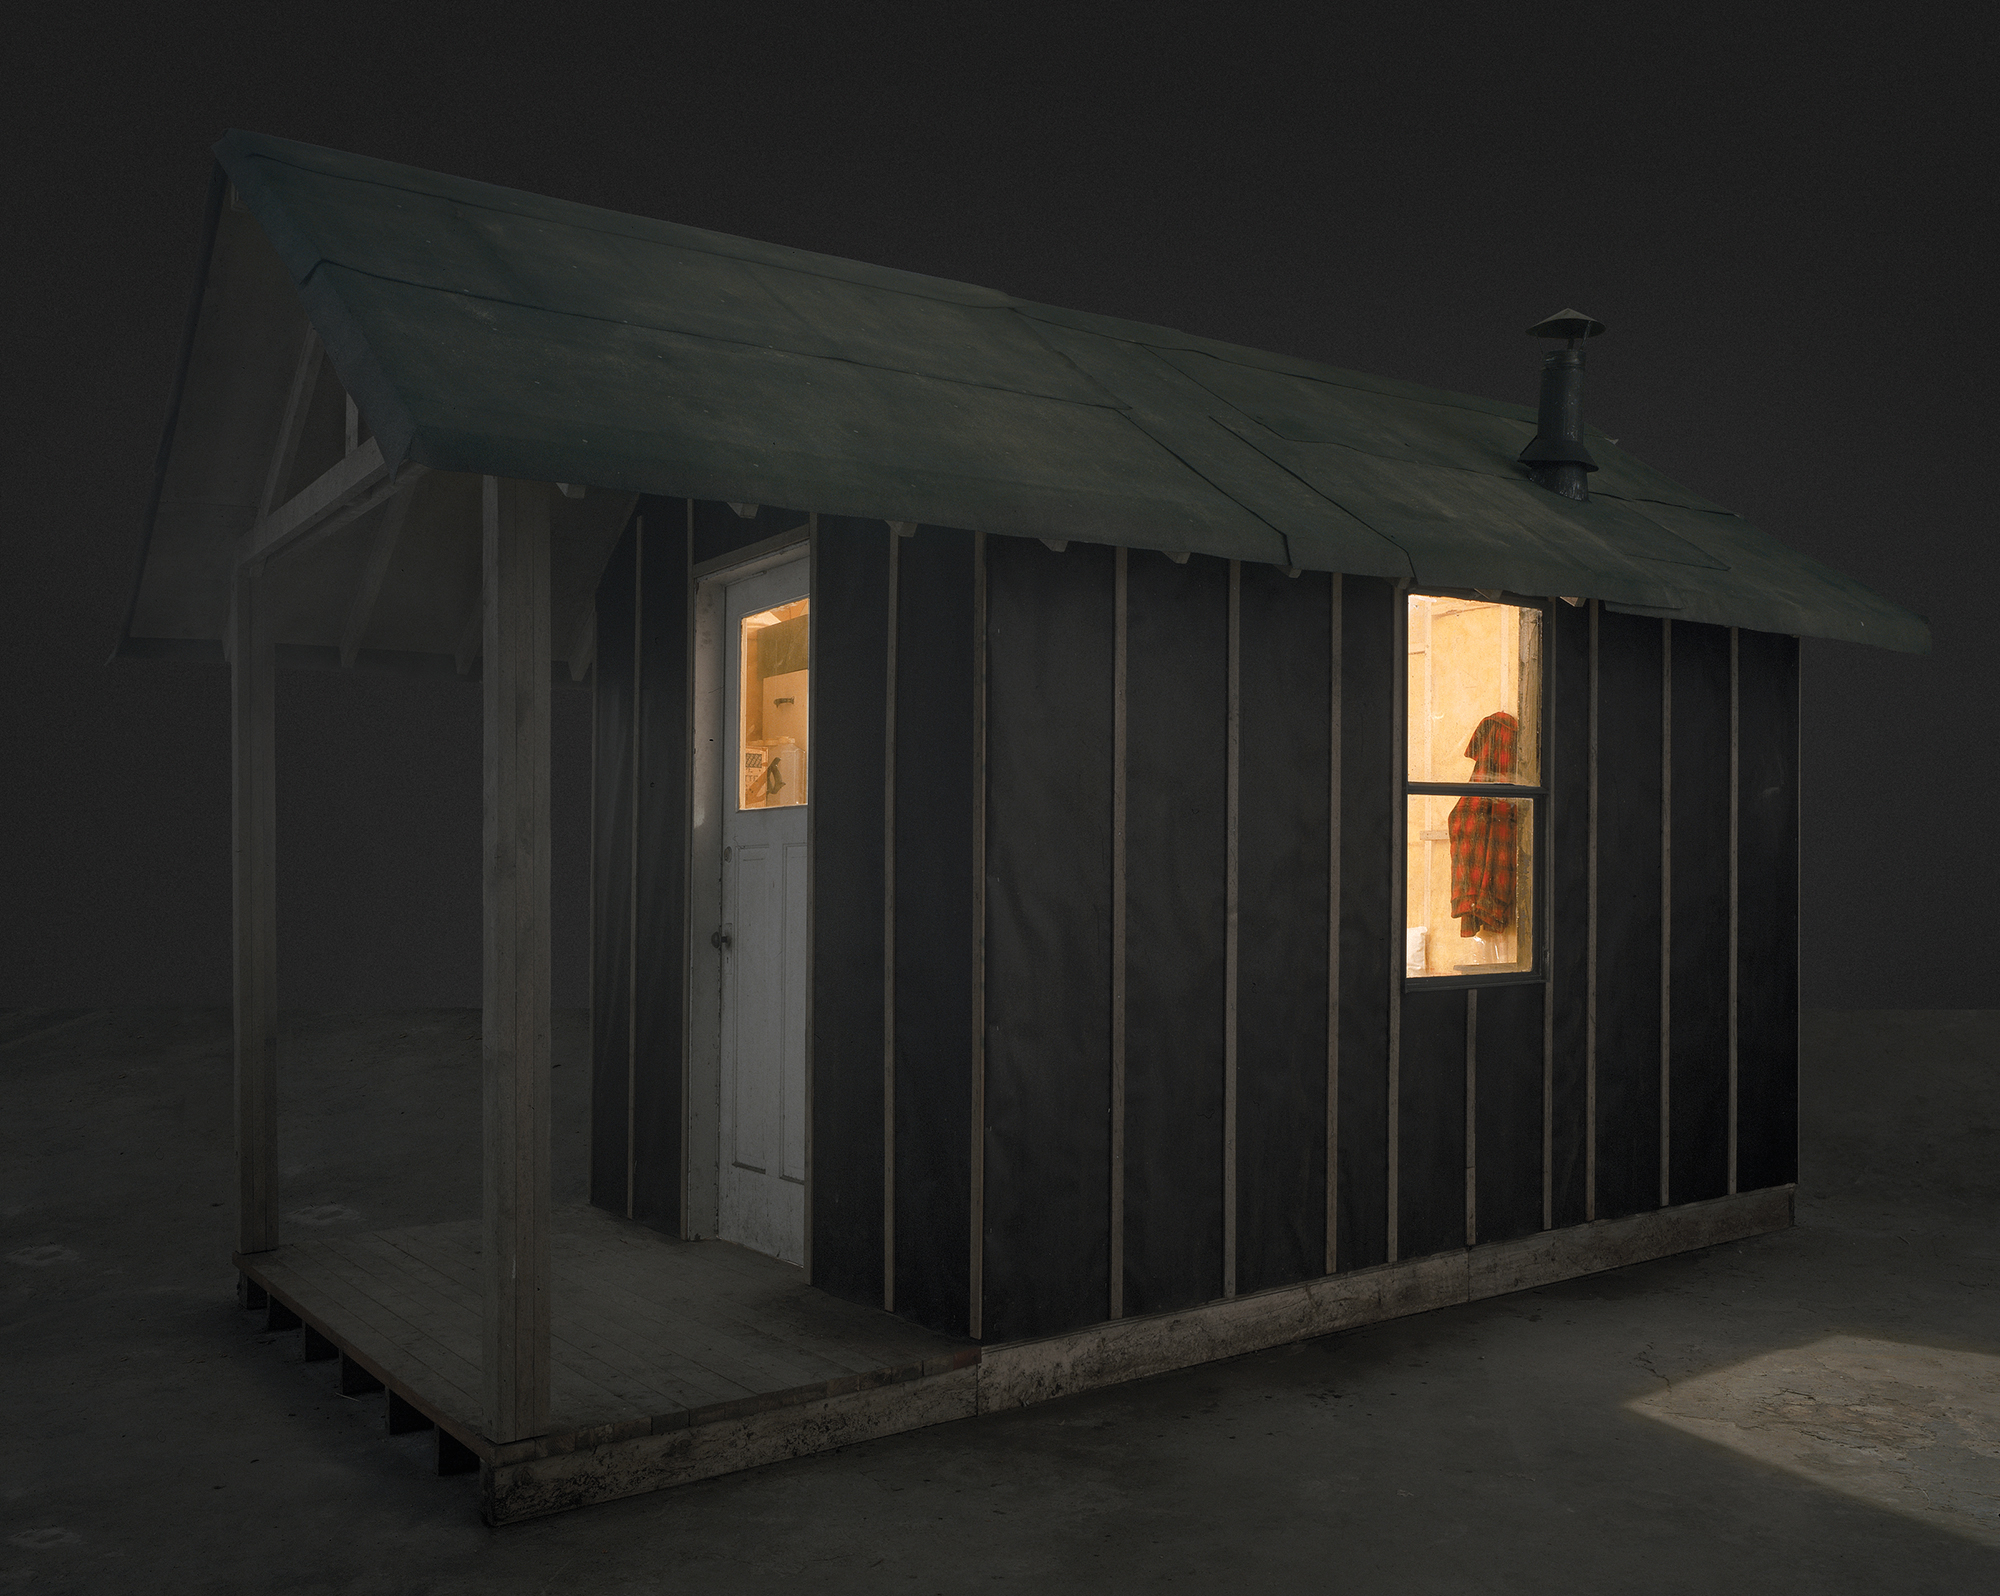 This photograph shows a wooden cabin with a pitched roof in a gallery space. Light is shining through a side window. On the porch there are two gasoline cans and some firewood.